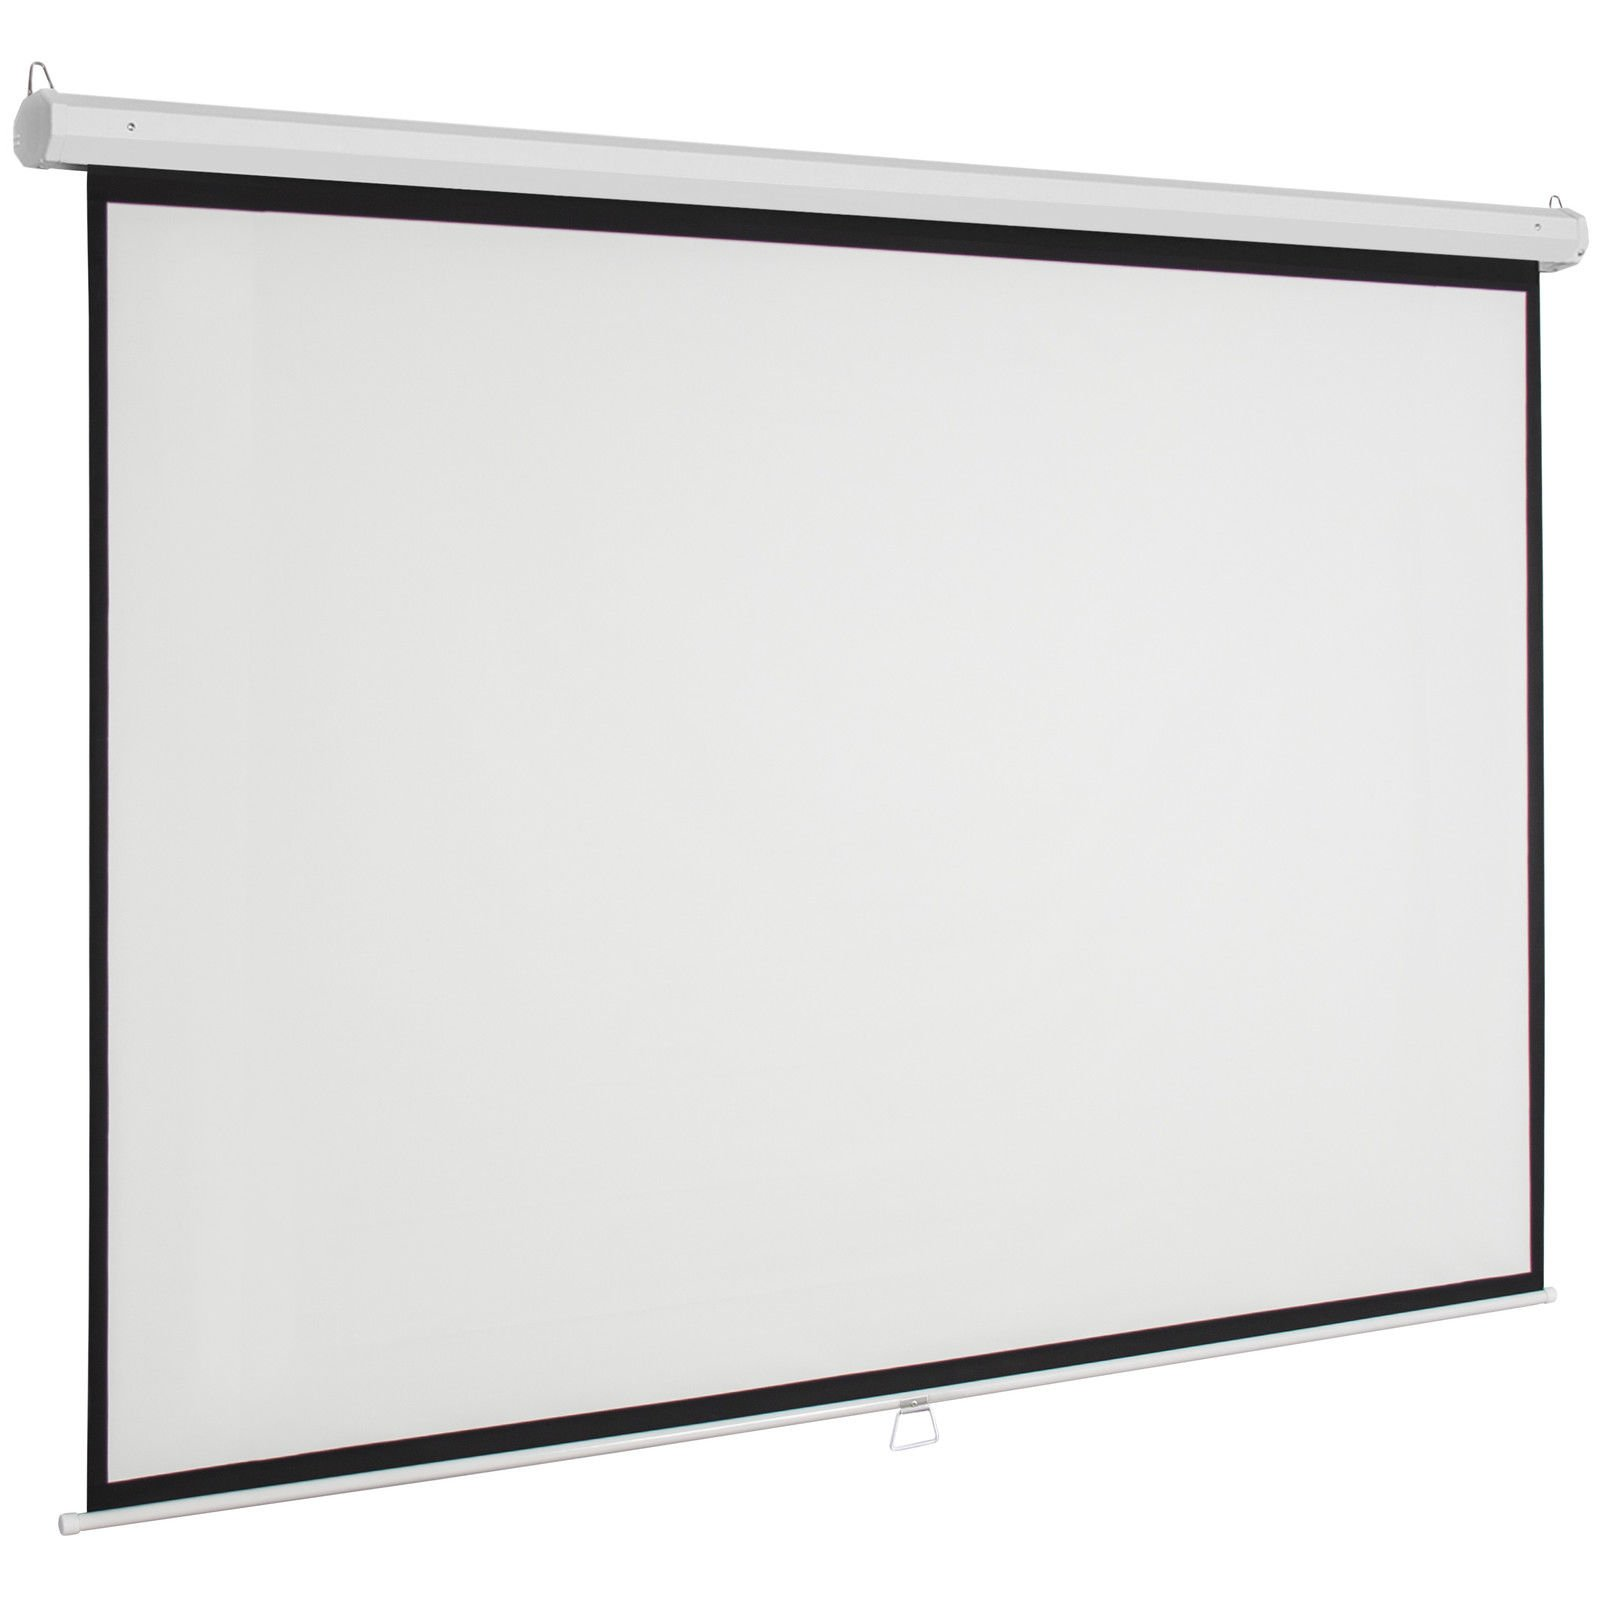 Marketworldcup - 119'' Manual Projector Screen 84''X84'' Pull Down Projection Home Movie Theater Premium Quality!! Blowout Prices!